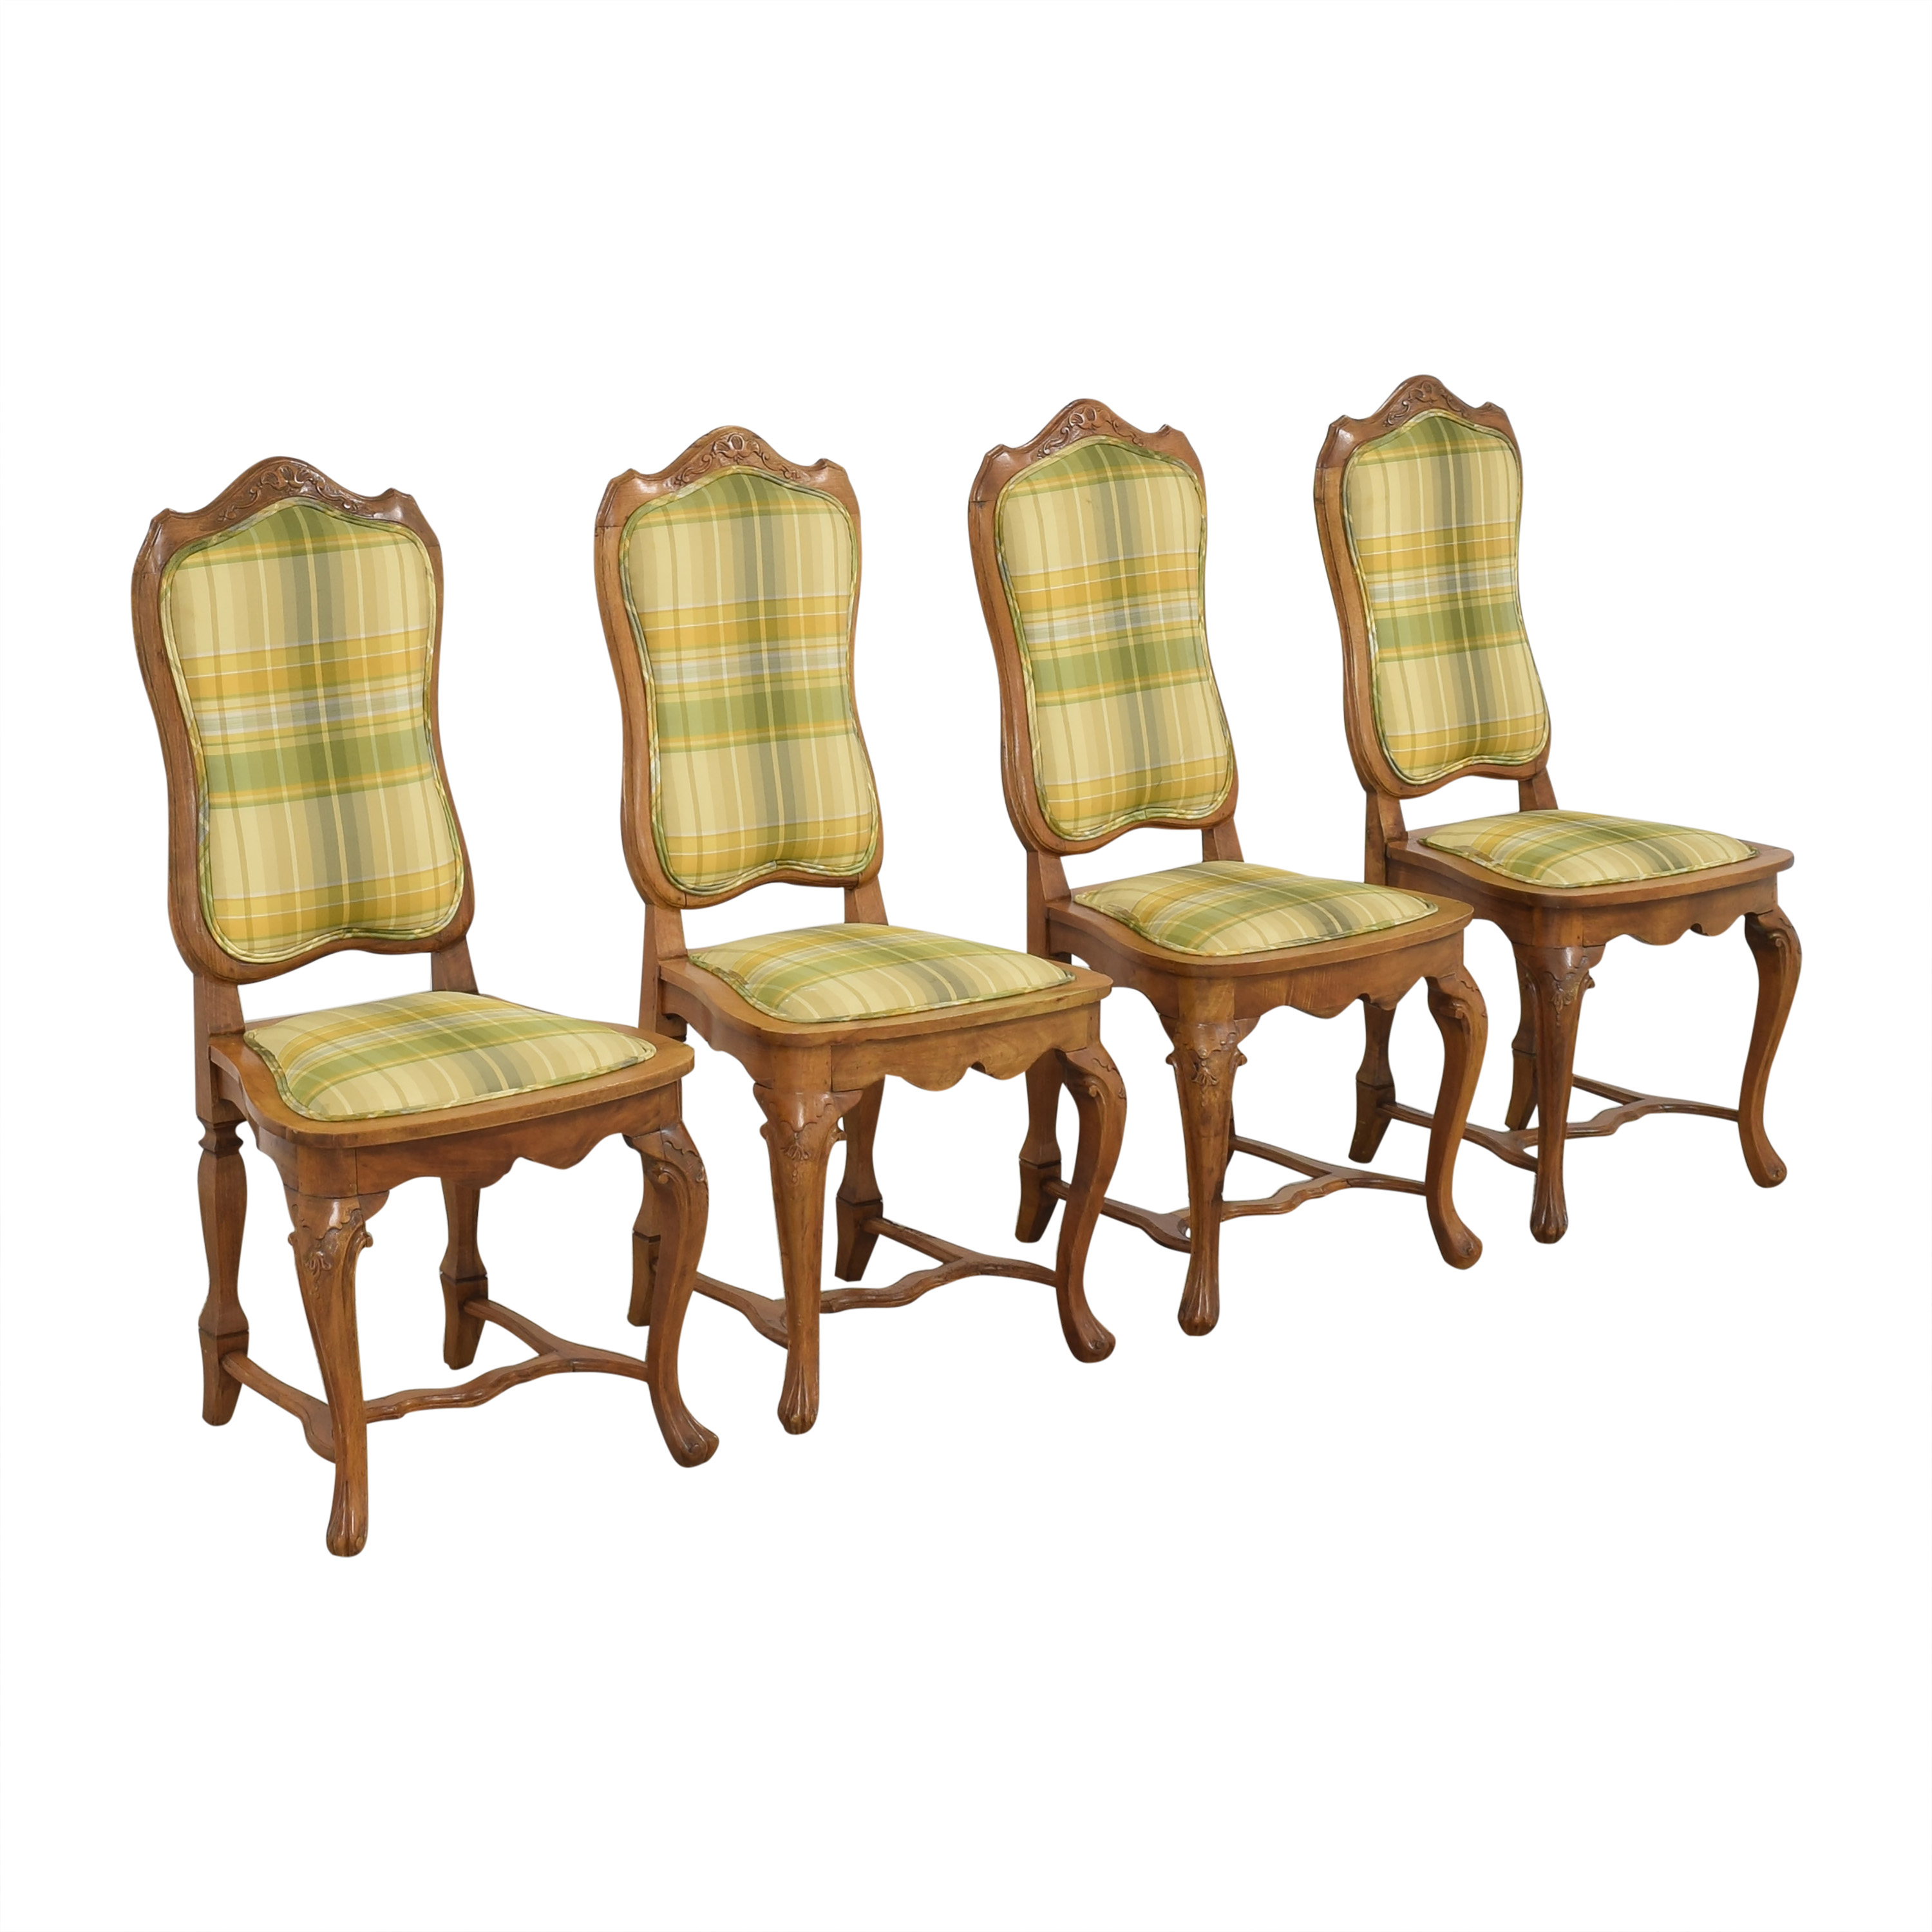 Italian Upholstered Dining Chairs